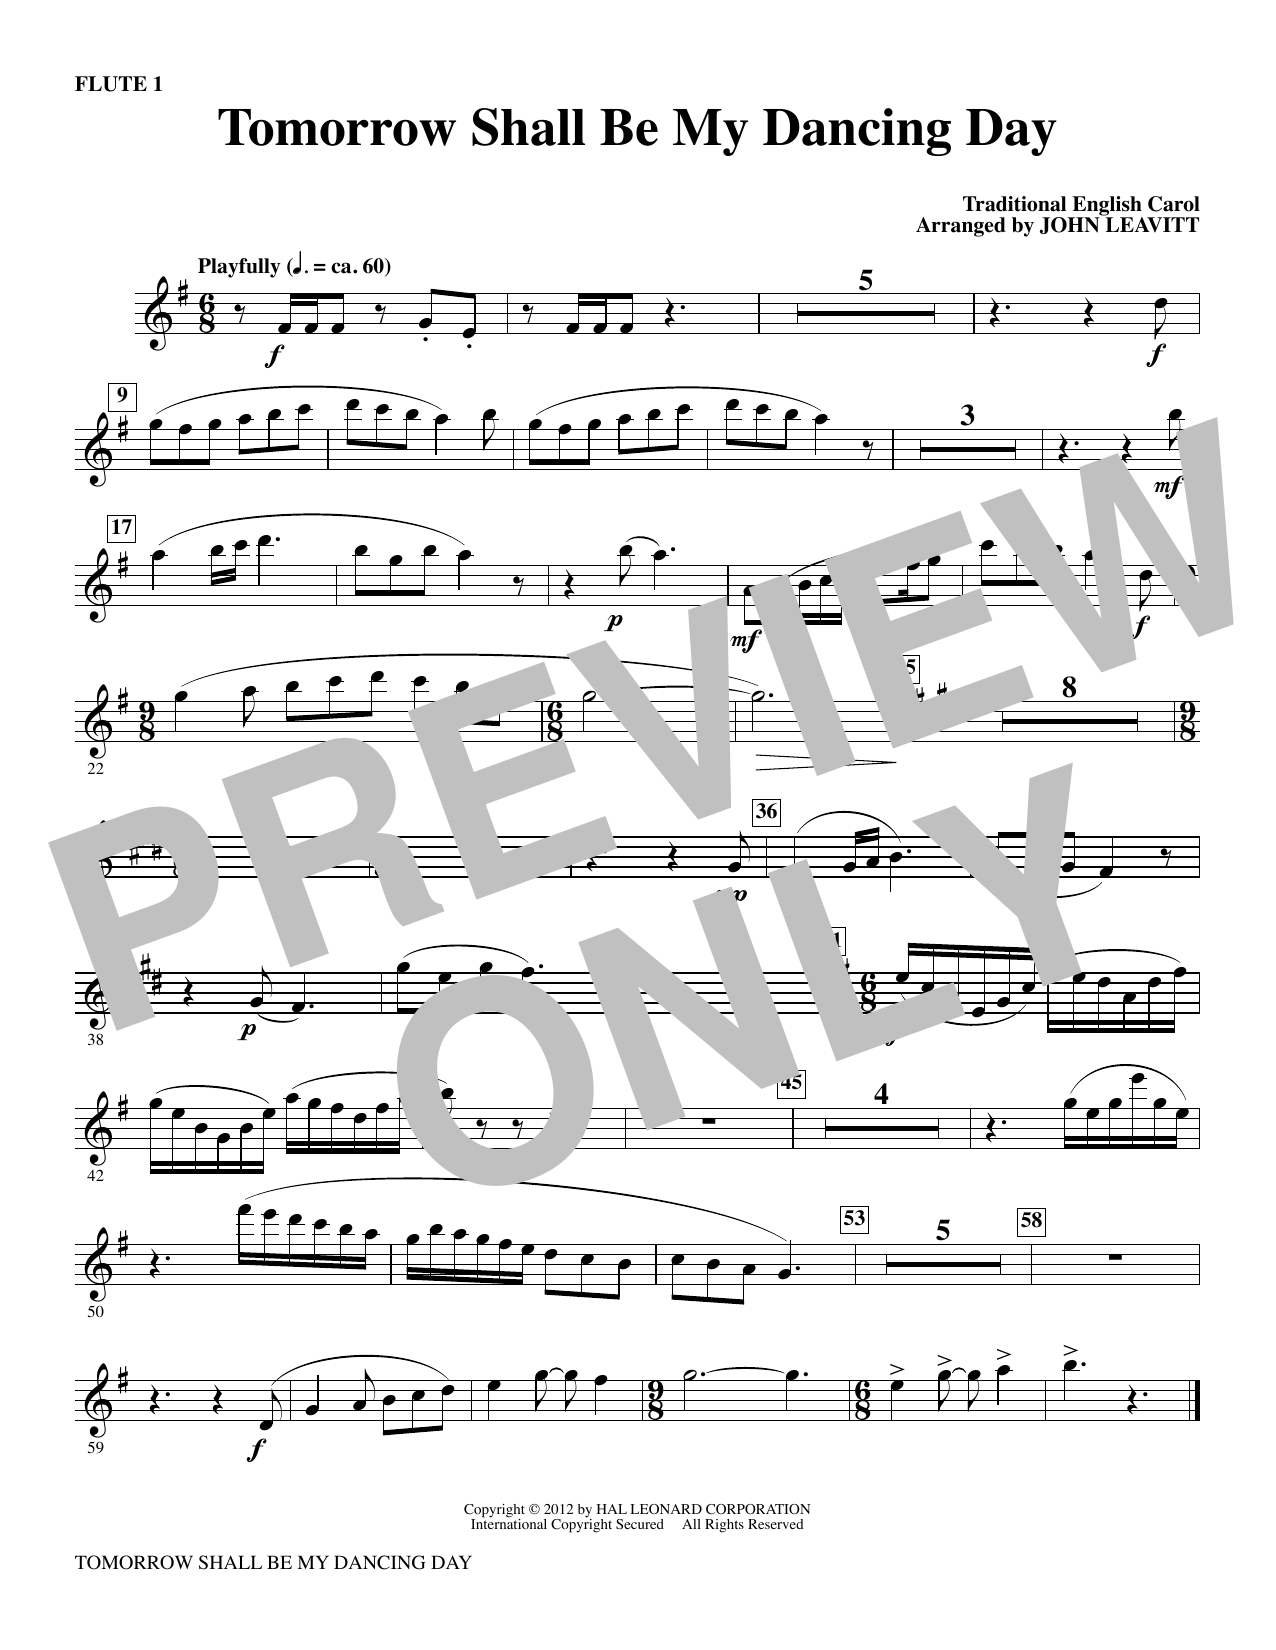 Tomorrow Shall Be My Dancing Day - Flute 1 Sheet Music